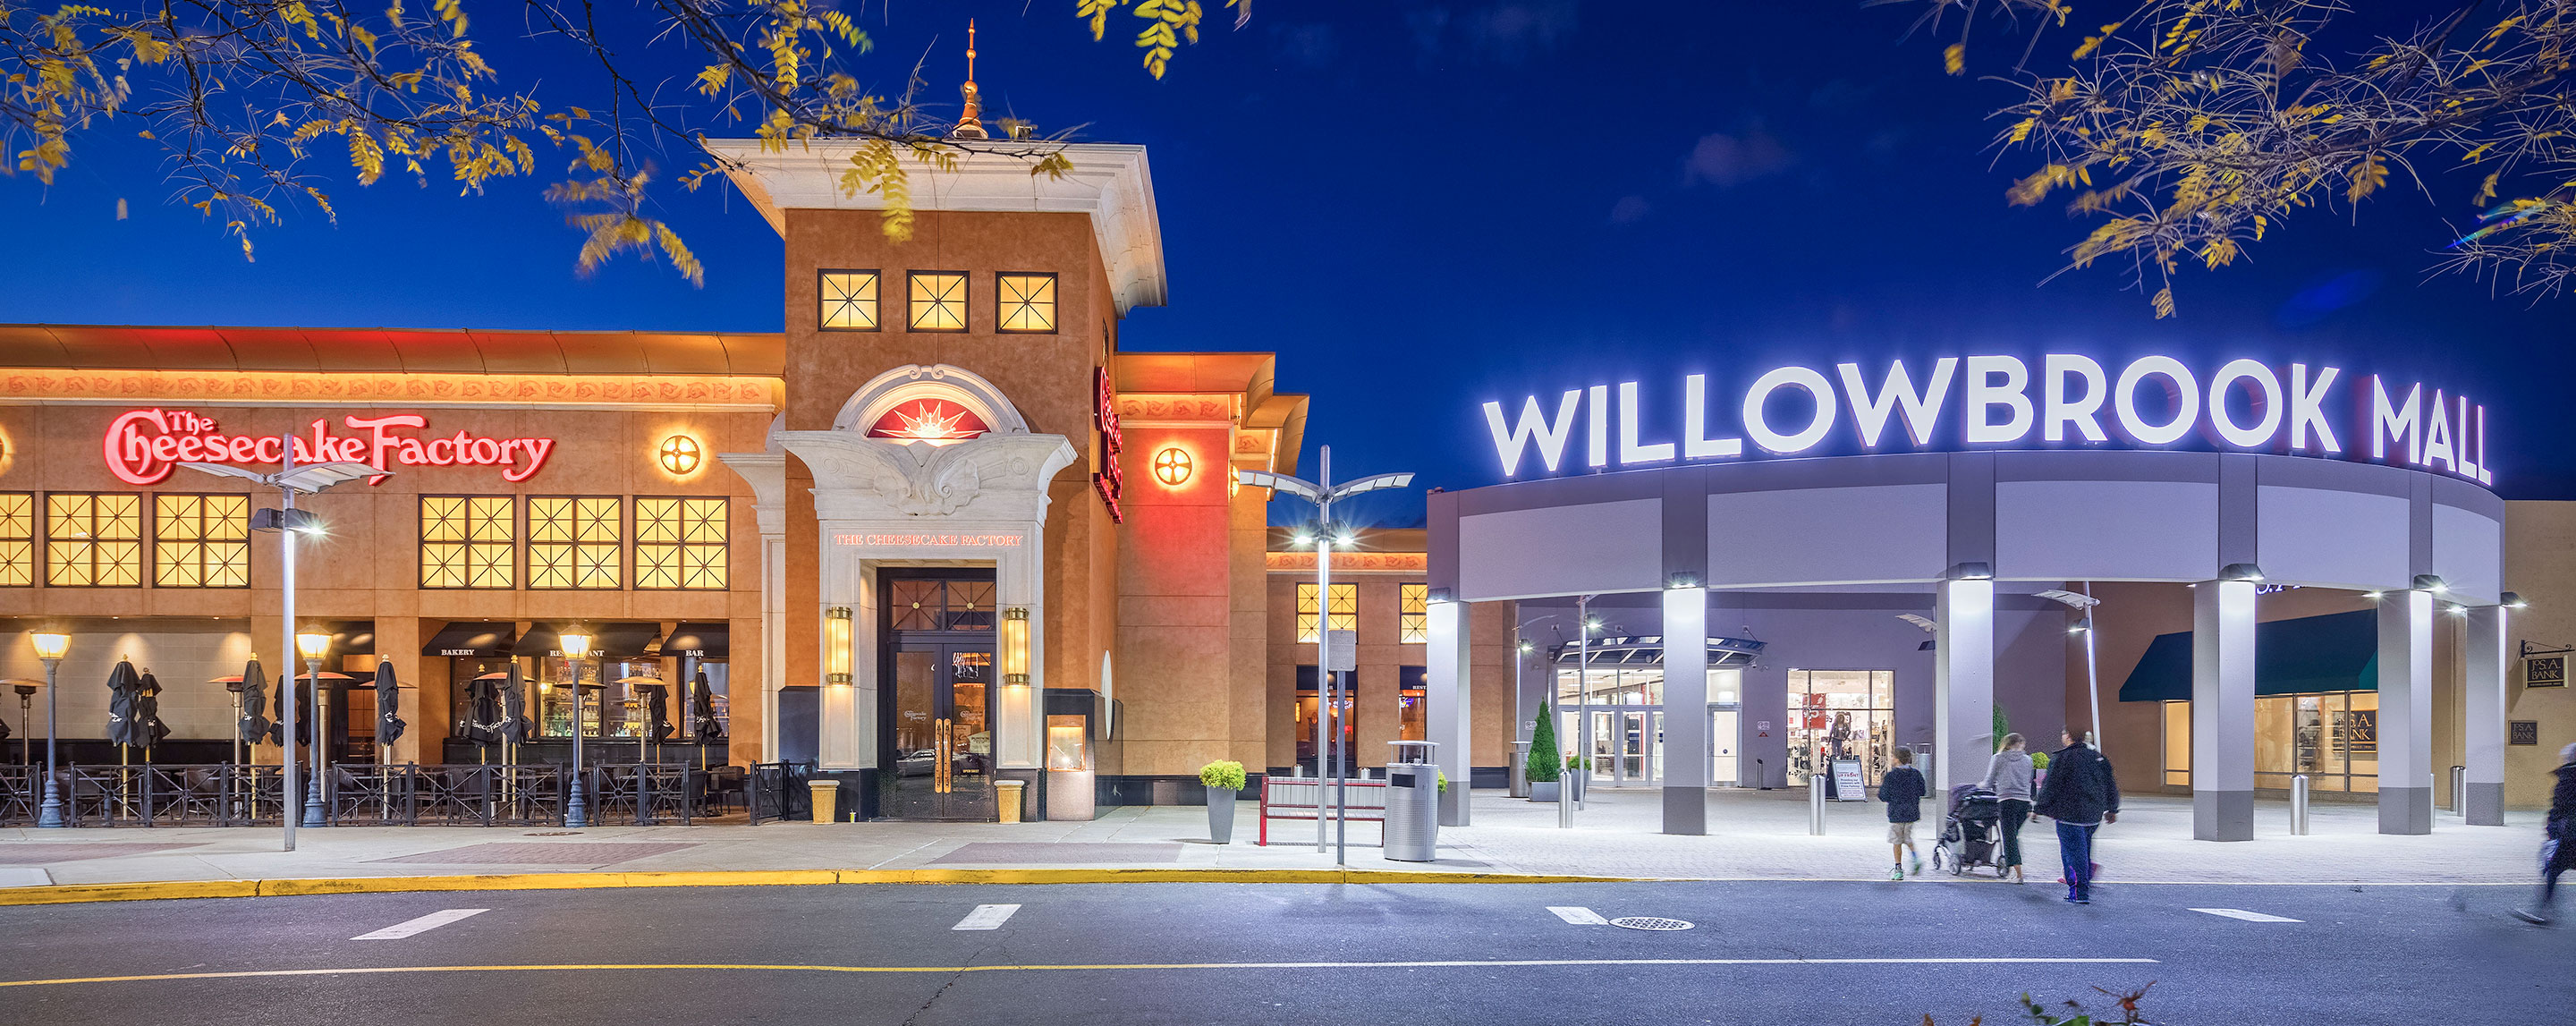 At dusk, the Willowbrook entrance sign and surrounding lights brightly illuminate the outside area.